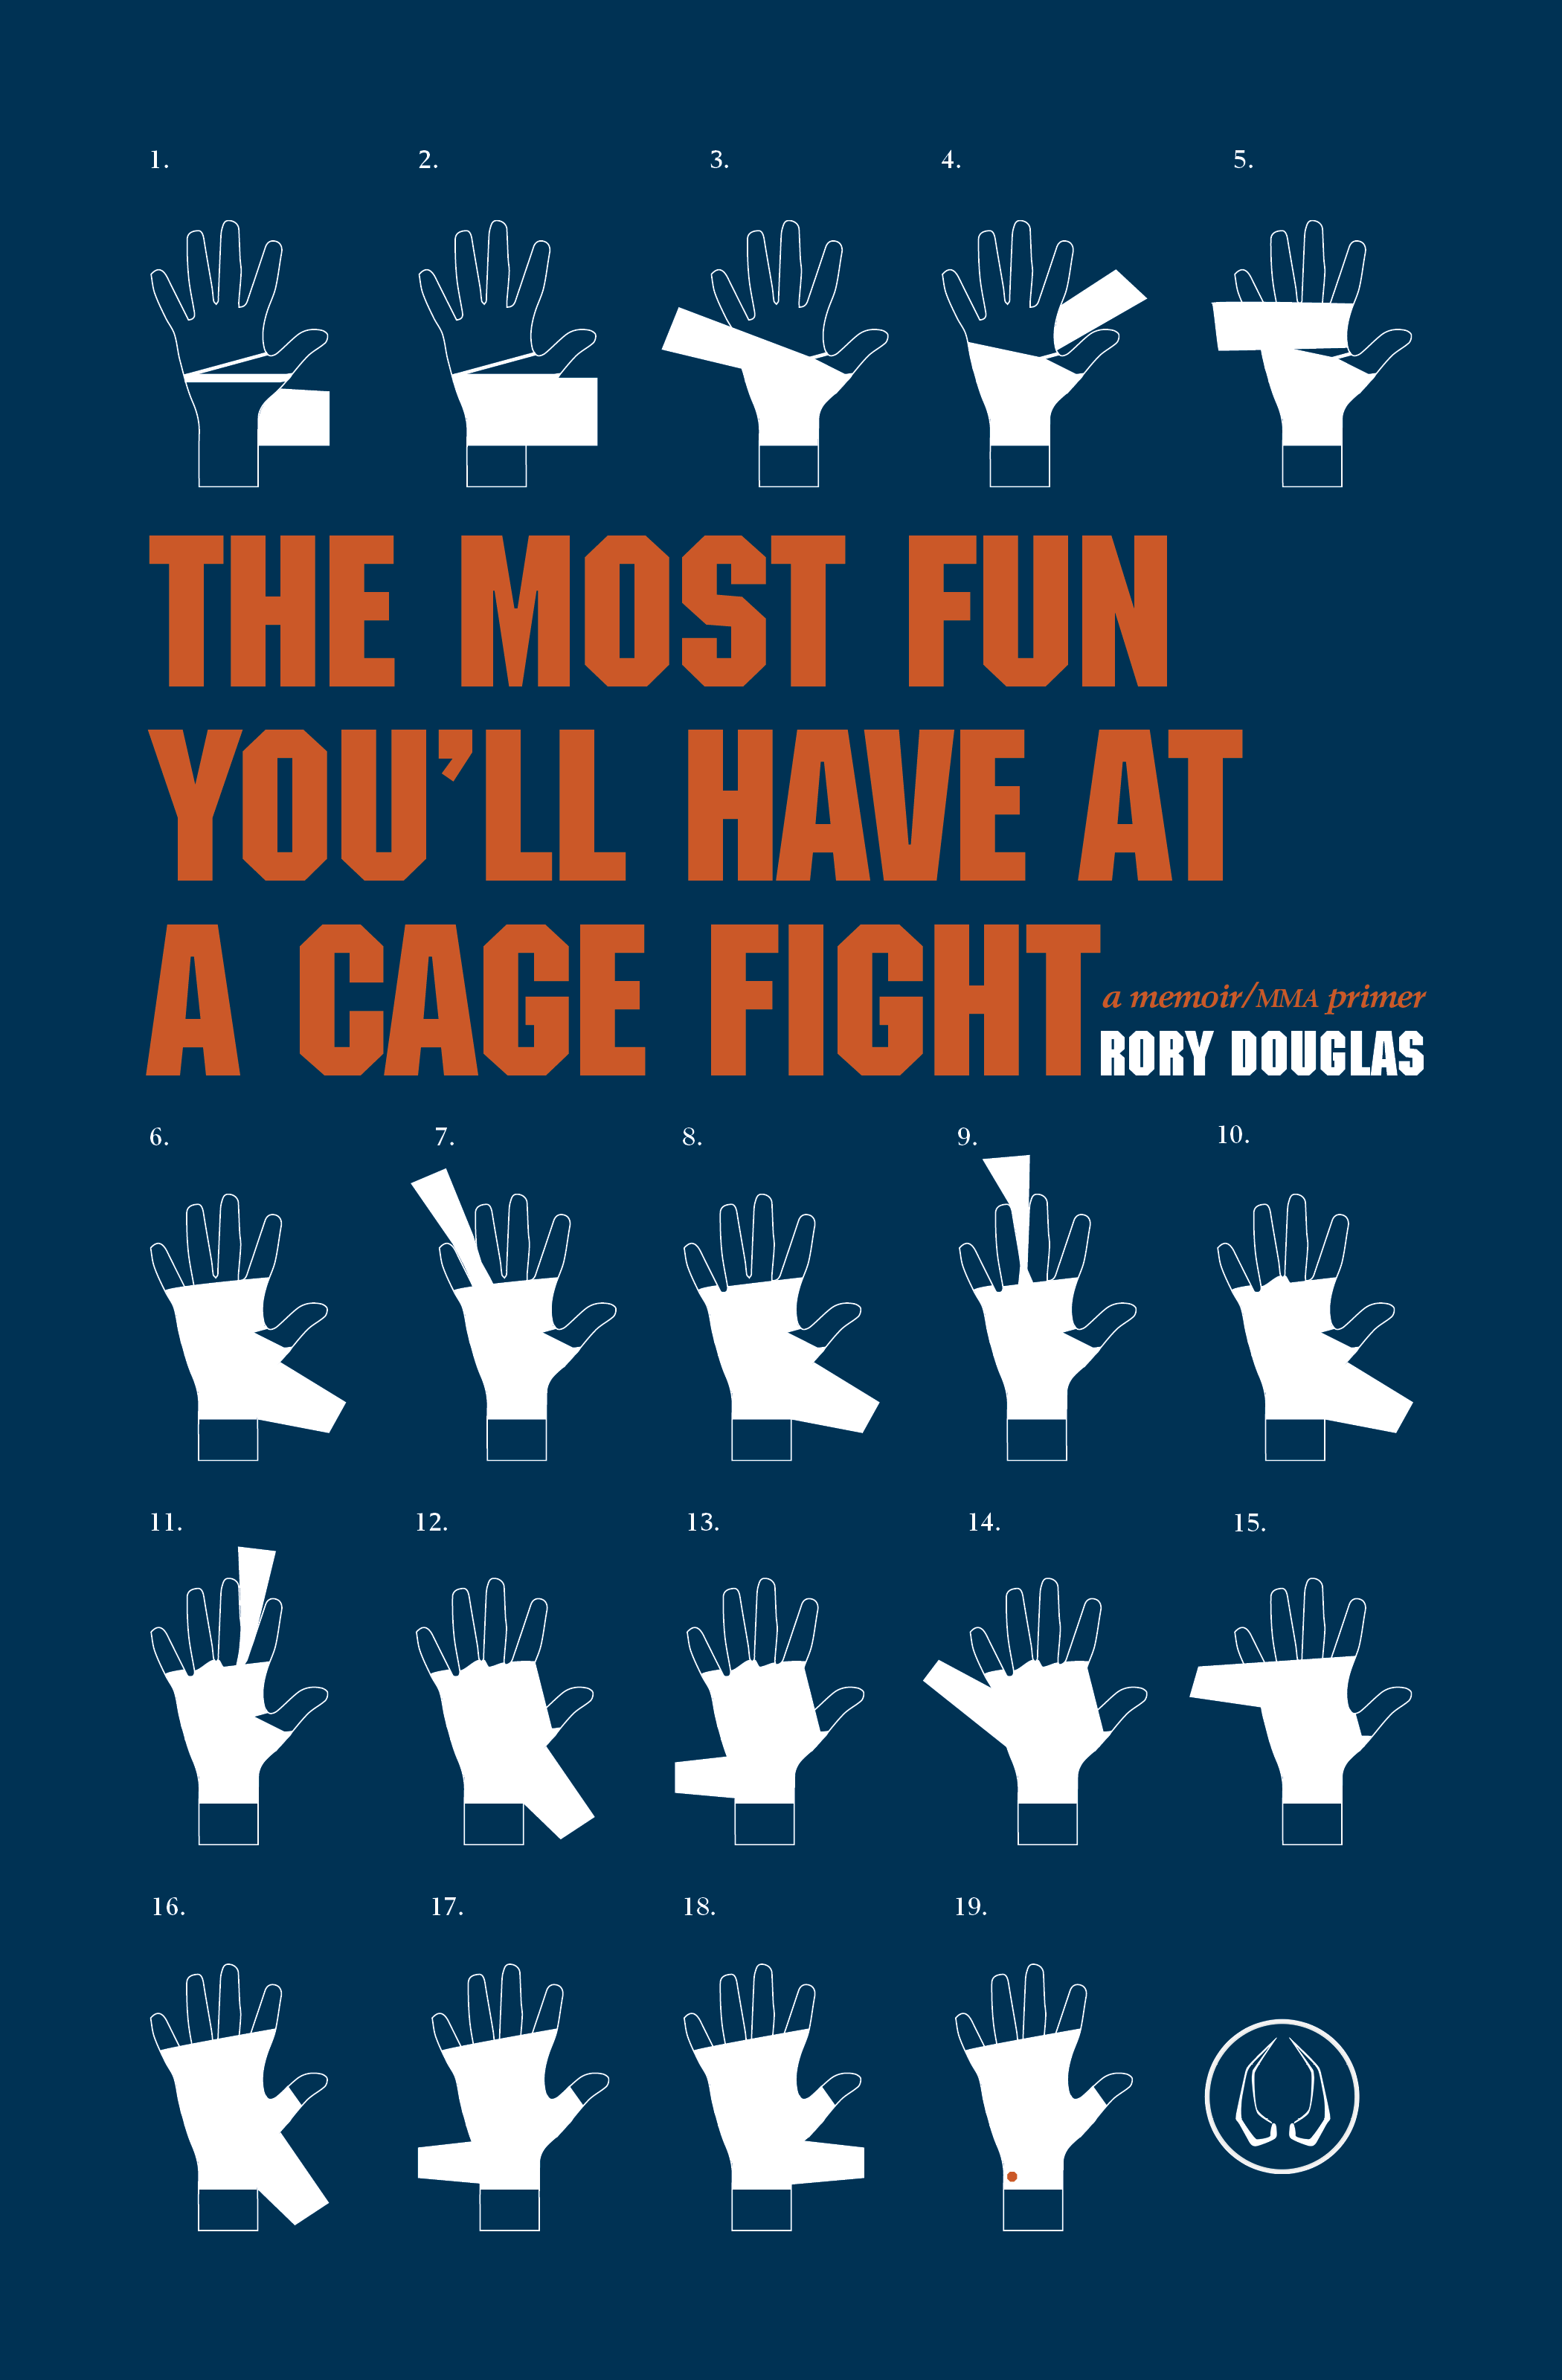 The Most Fun You'll Have At A Cage Fight by Rory Douglas (University of Hell Press, 2015)